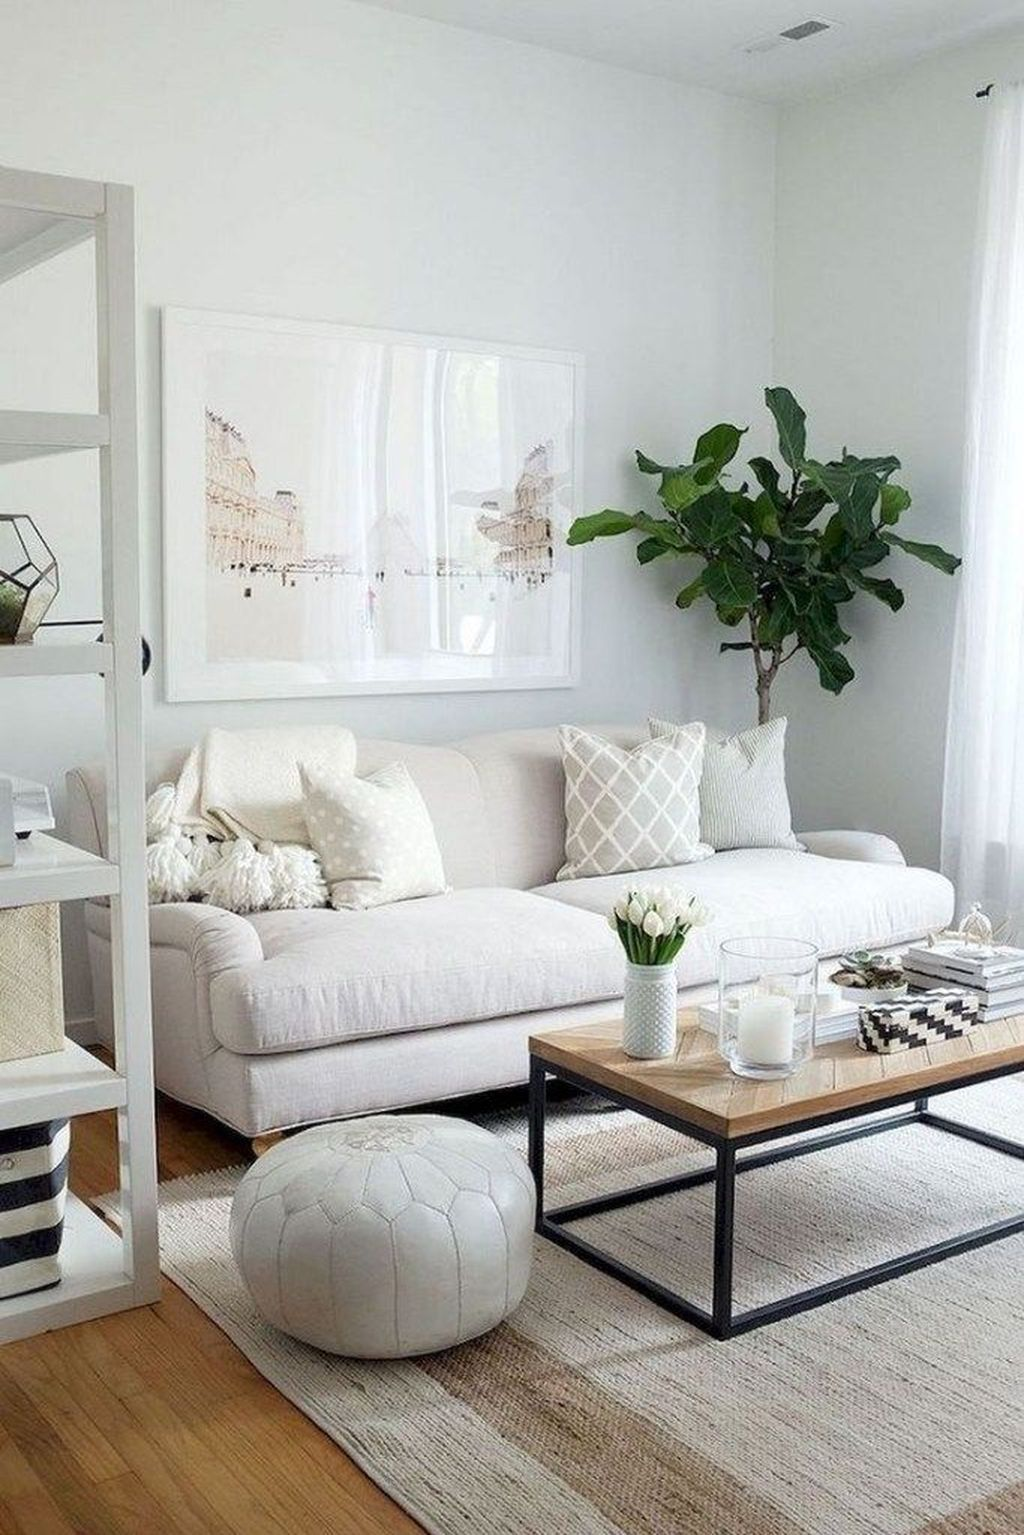 33 Awesome Small Space Living Room Decor Ideas In 2020 S